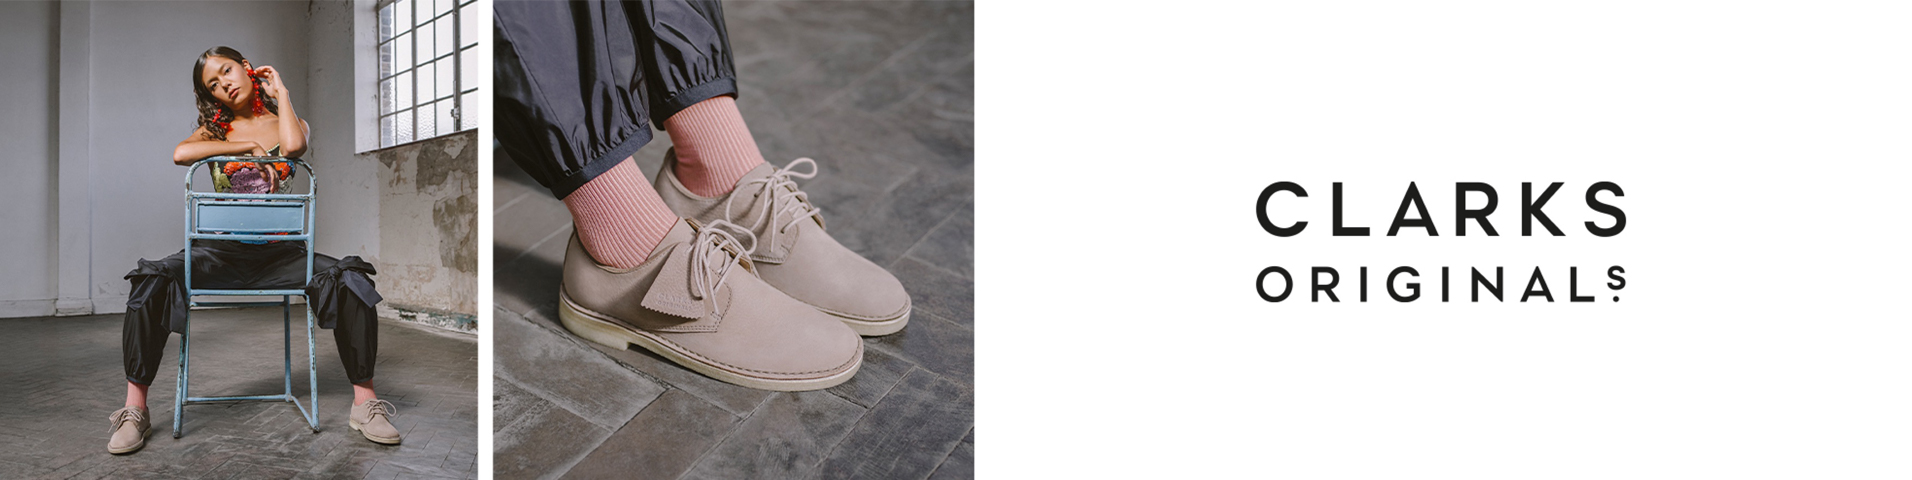 Clarks Originals Online Shop | Clarks Originals bezpłatna